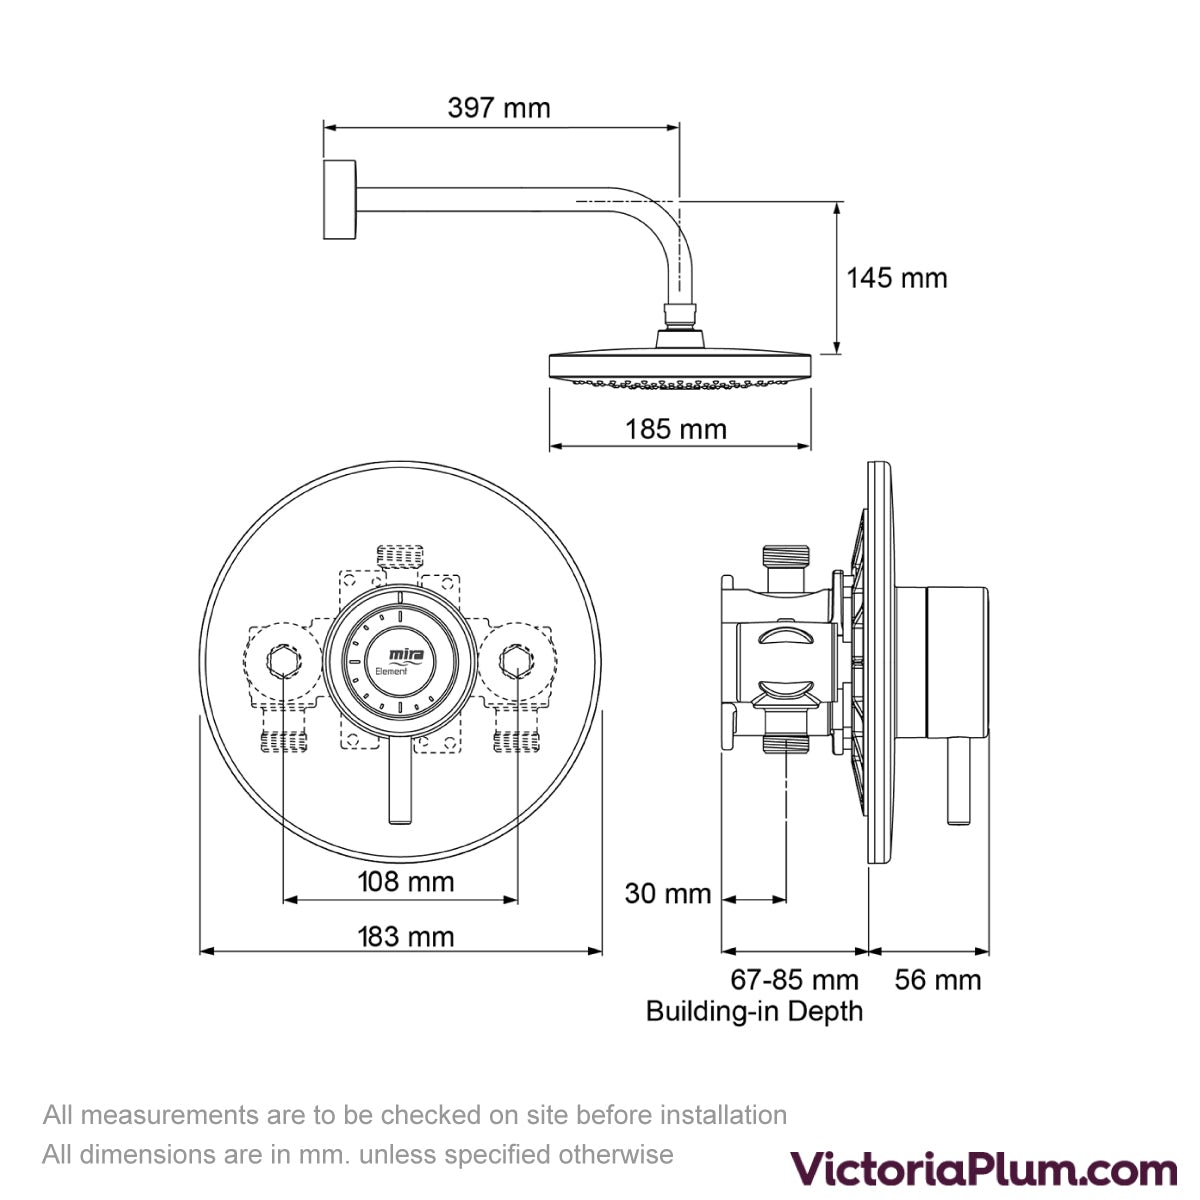 Dimensions for Mira Element BIR thermostatic mixer shower